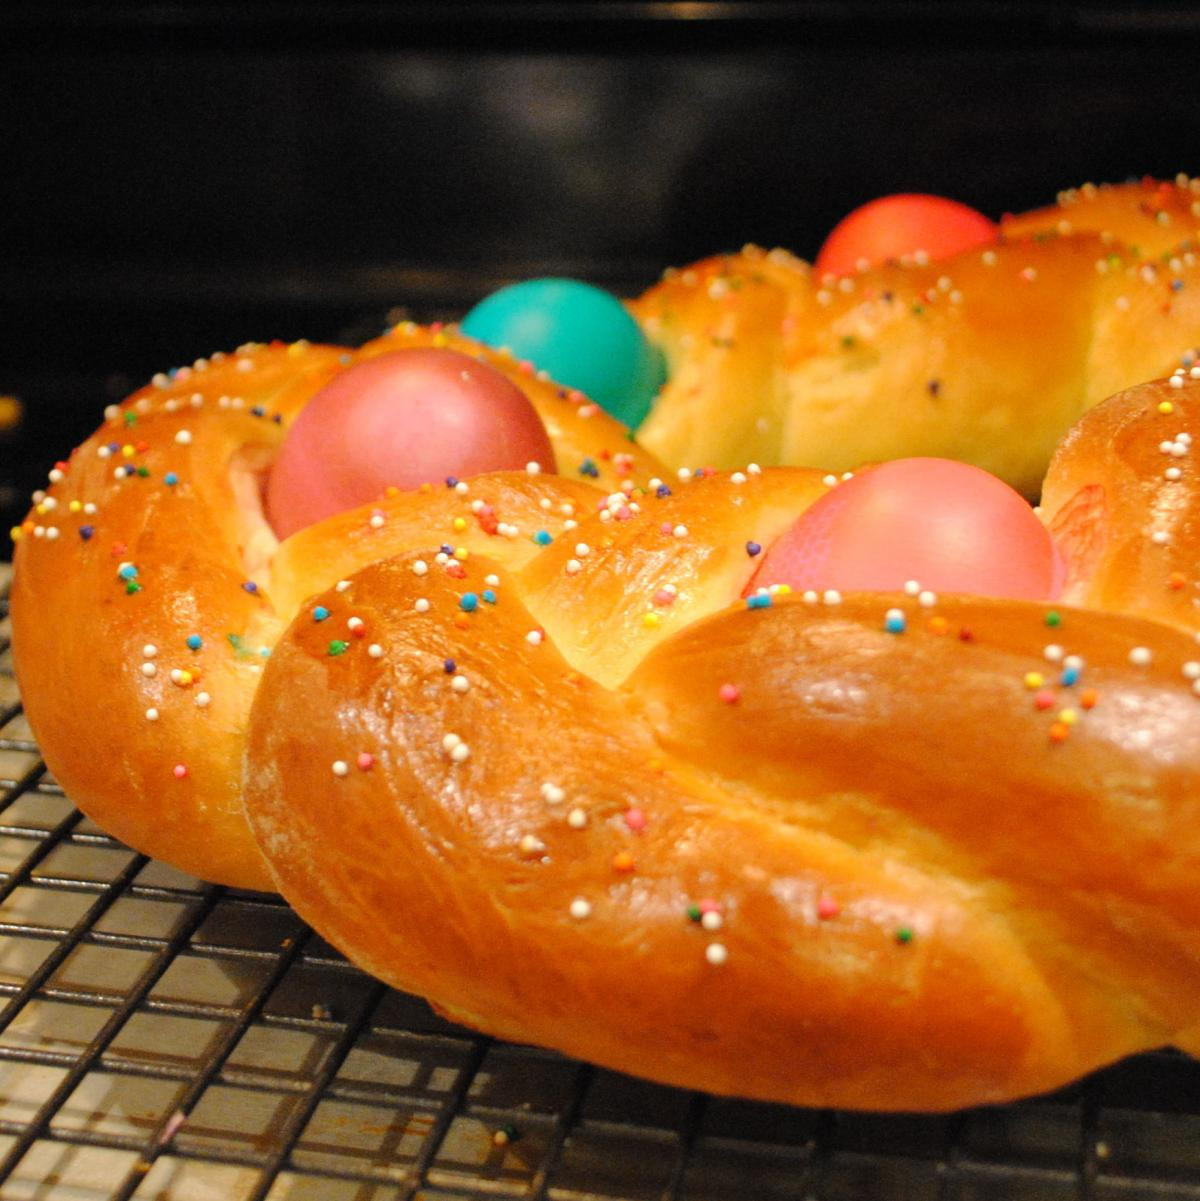 Easter Egg Bread  8 Sweet and Edible Easter Bread Centerpieces Dish